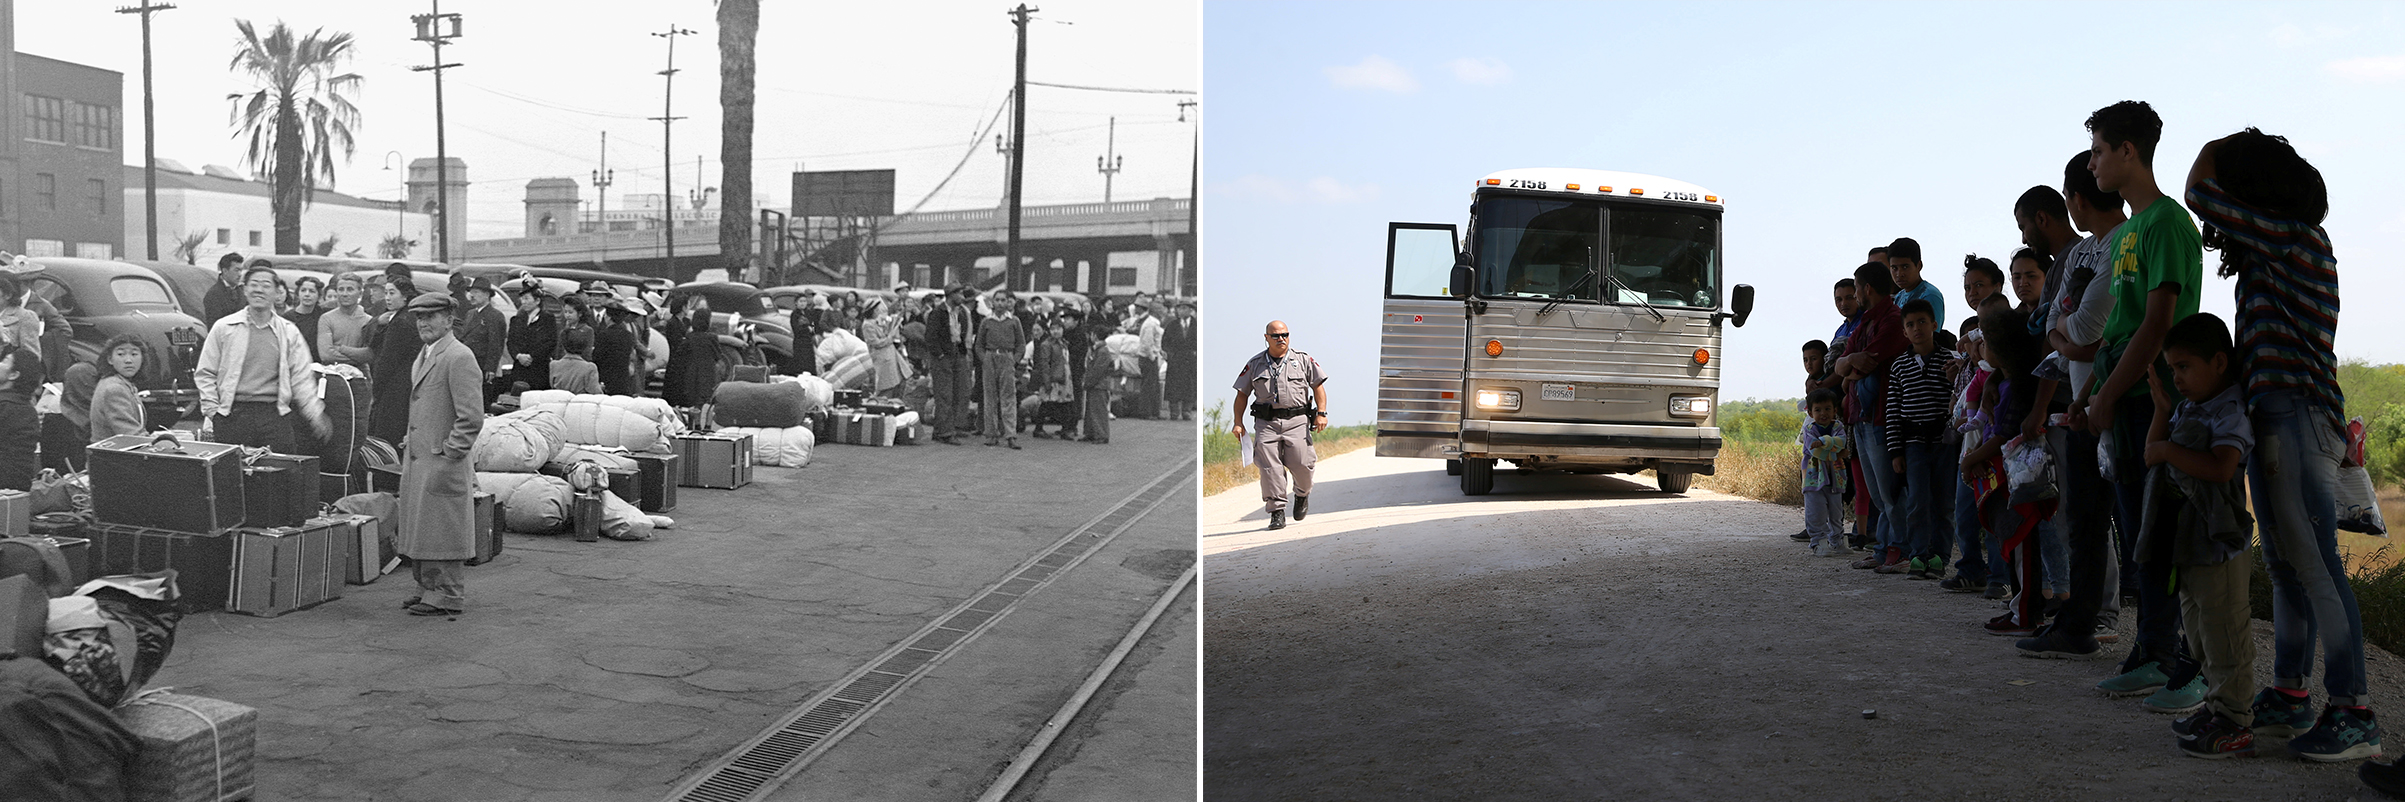 Left: Japanese-Americans in Los Angeles, California, waiting for the train to take them to Owens Valley internment camp in April 1942. Right: Pedestrian travelers wait in a U.S. Customs and Border Protection line at the Mexico-U.S. border port of entry in Hidalgo, Texas, on April 13, 2018.